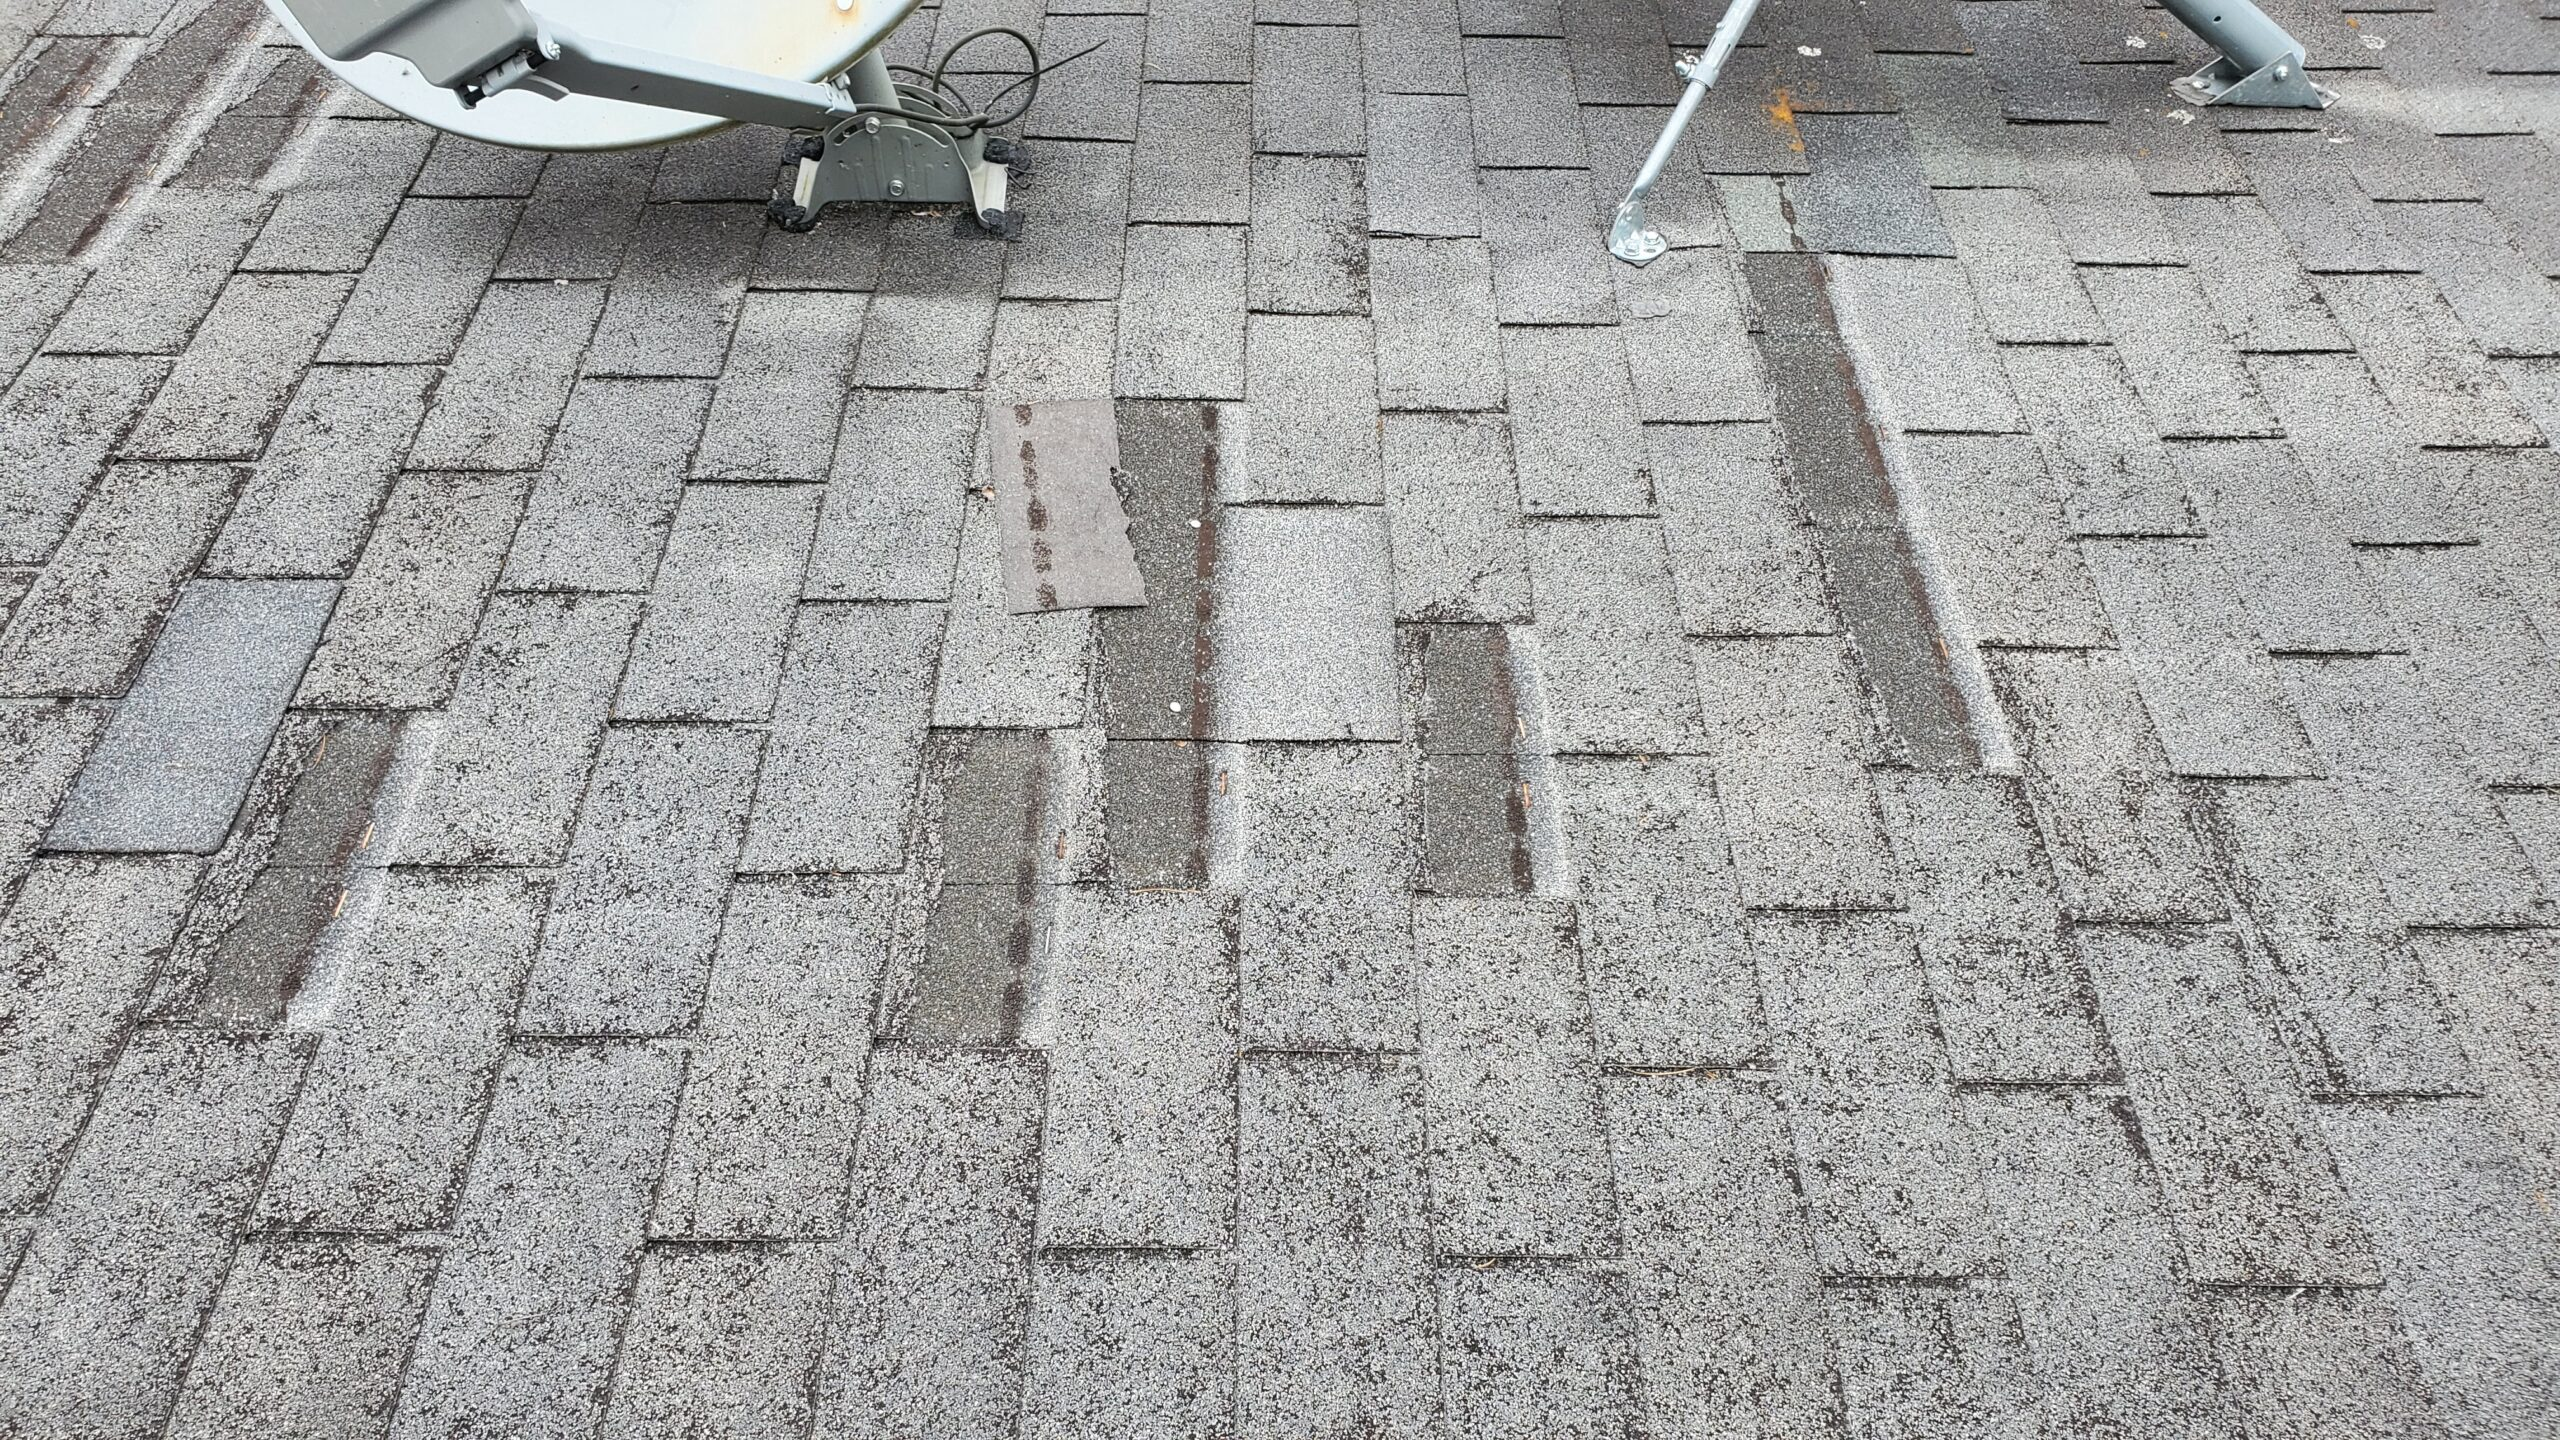 This is a picture of grey shingles on a roof and many of the shingles are missing and cracked or broken.